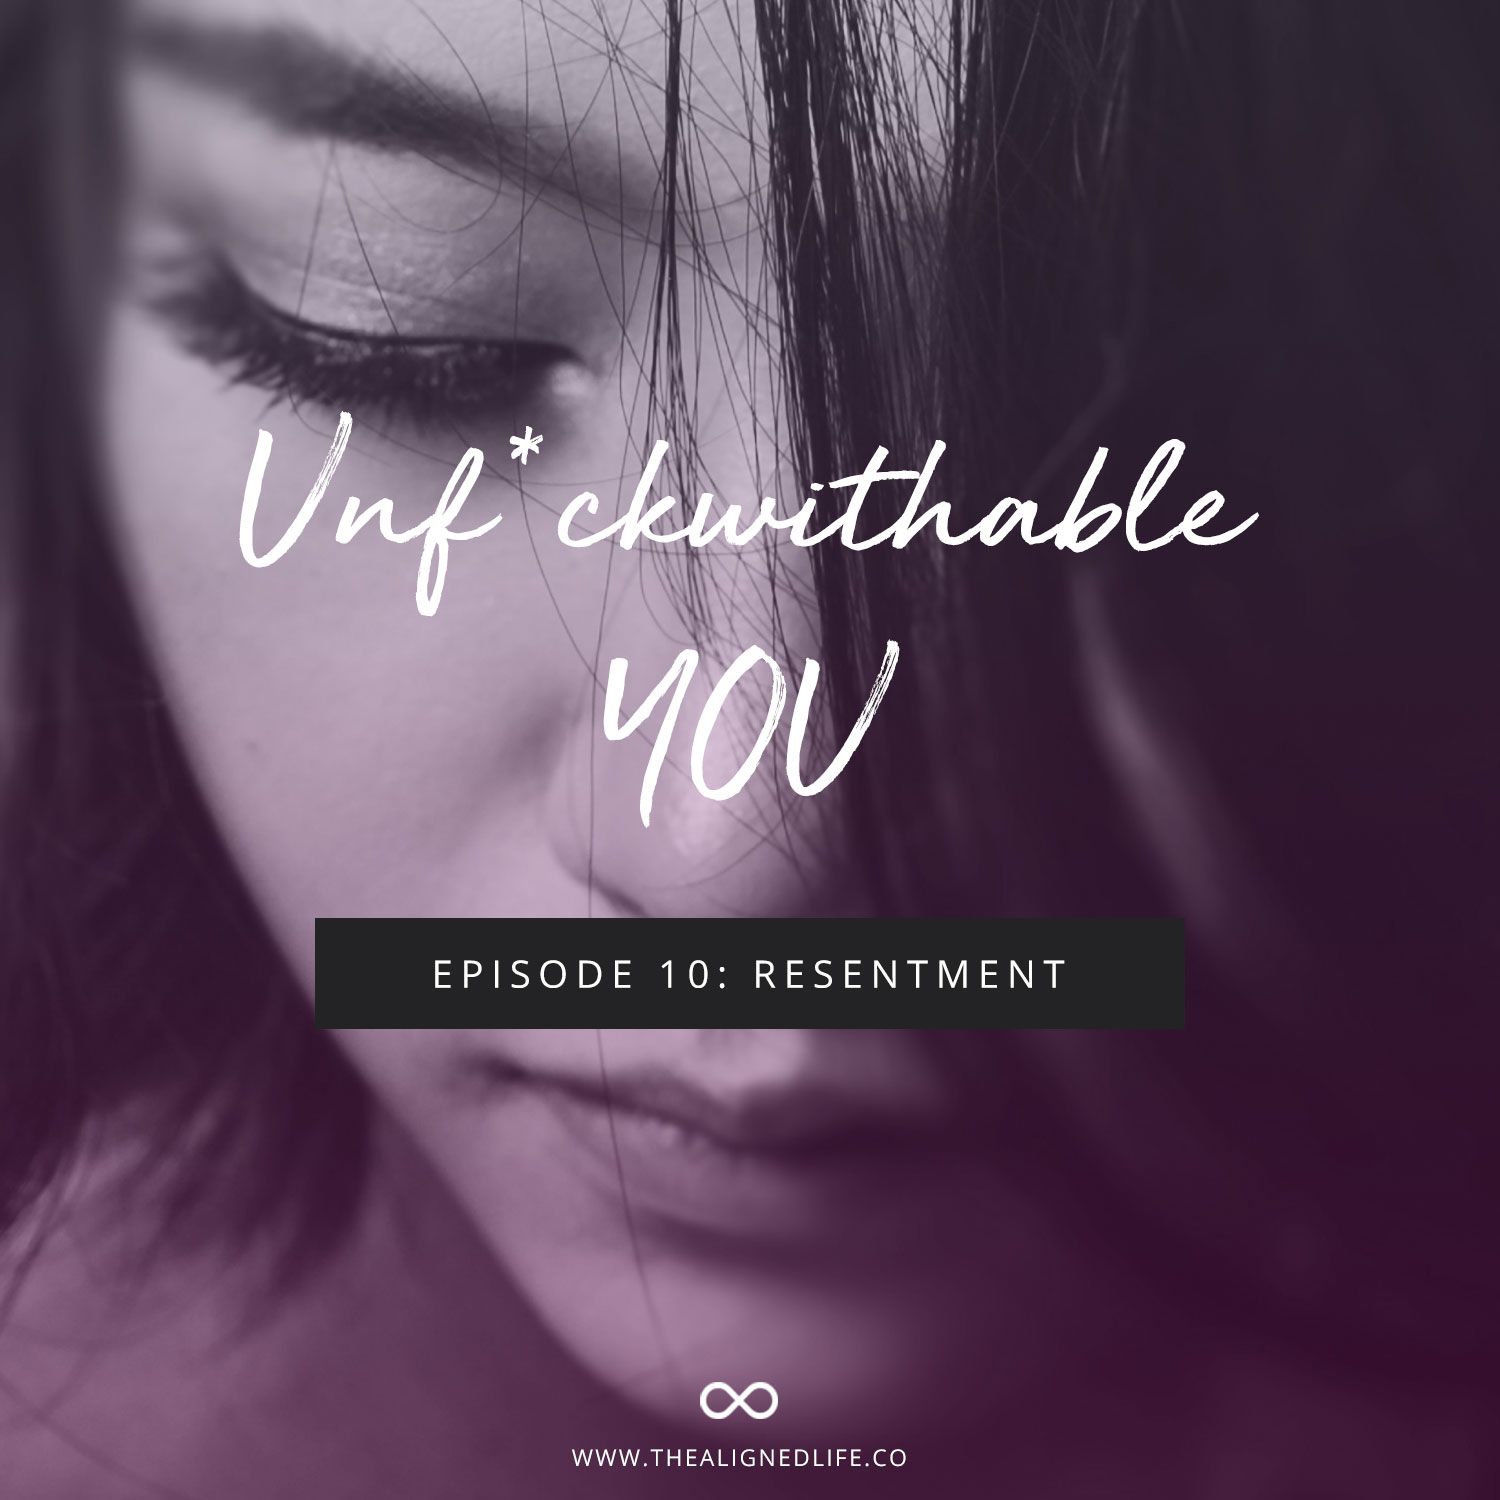 Unf*ckwithable You Episode 10: Resentment